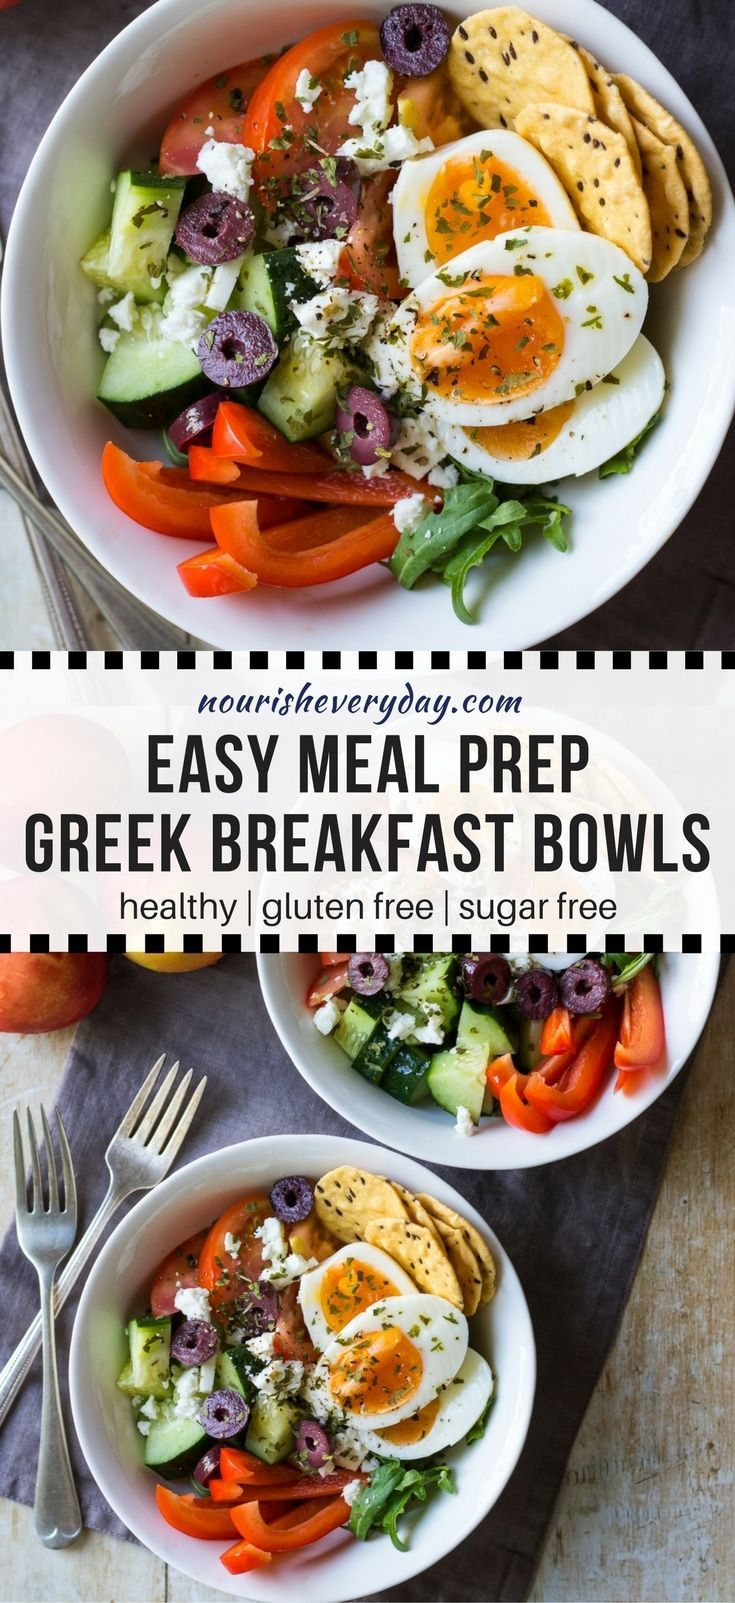 Meal prep breakfast bowls, Greek style! A fresh breakfast salad base topped with boiled eggs, olives and feta. Easy and healthy. Tuck in some crackers and you're all set! #mealprep #breakfastbowl #breakfastsalad #glutenfree